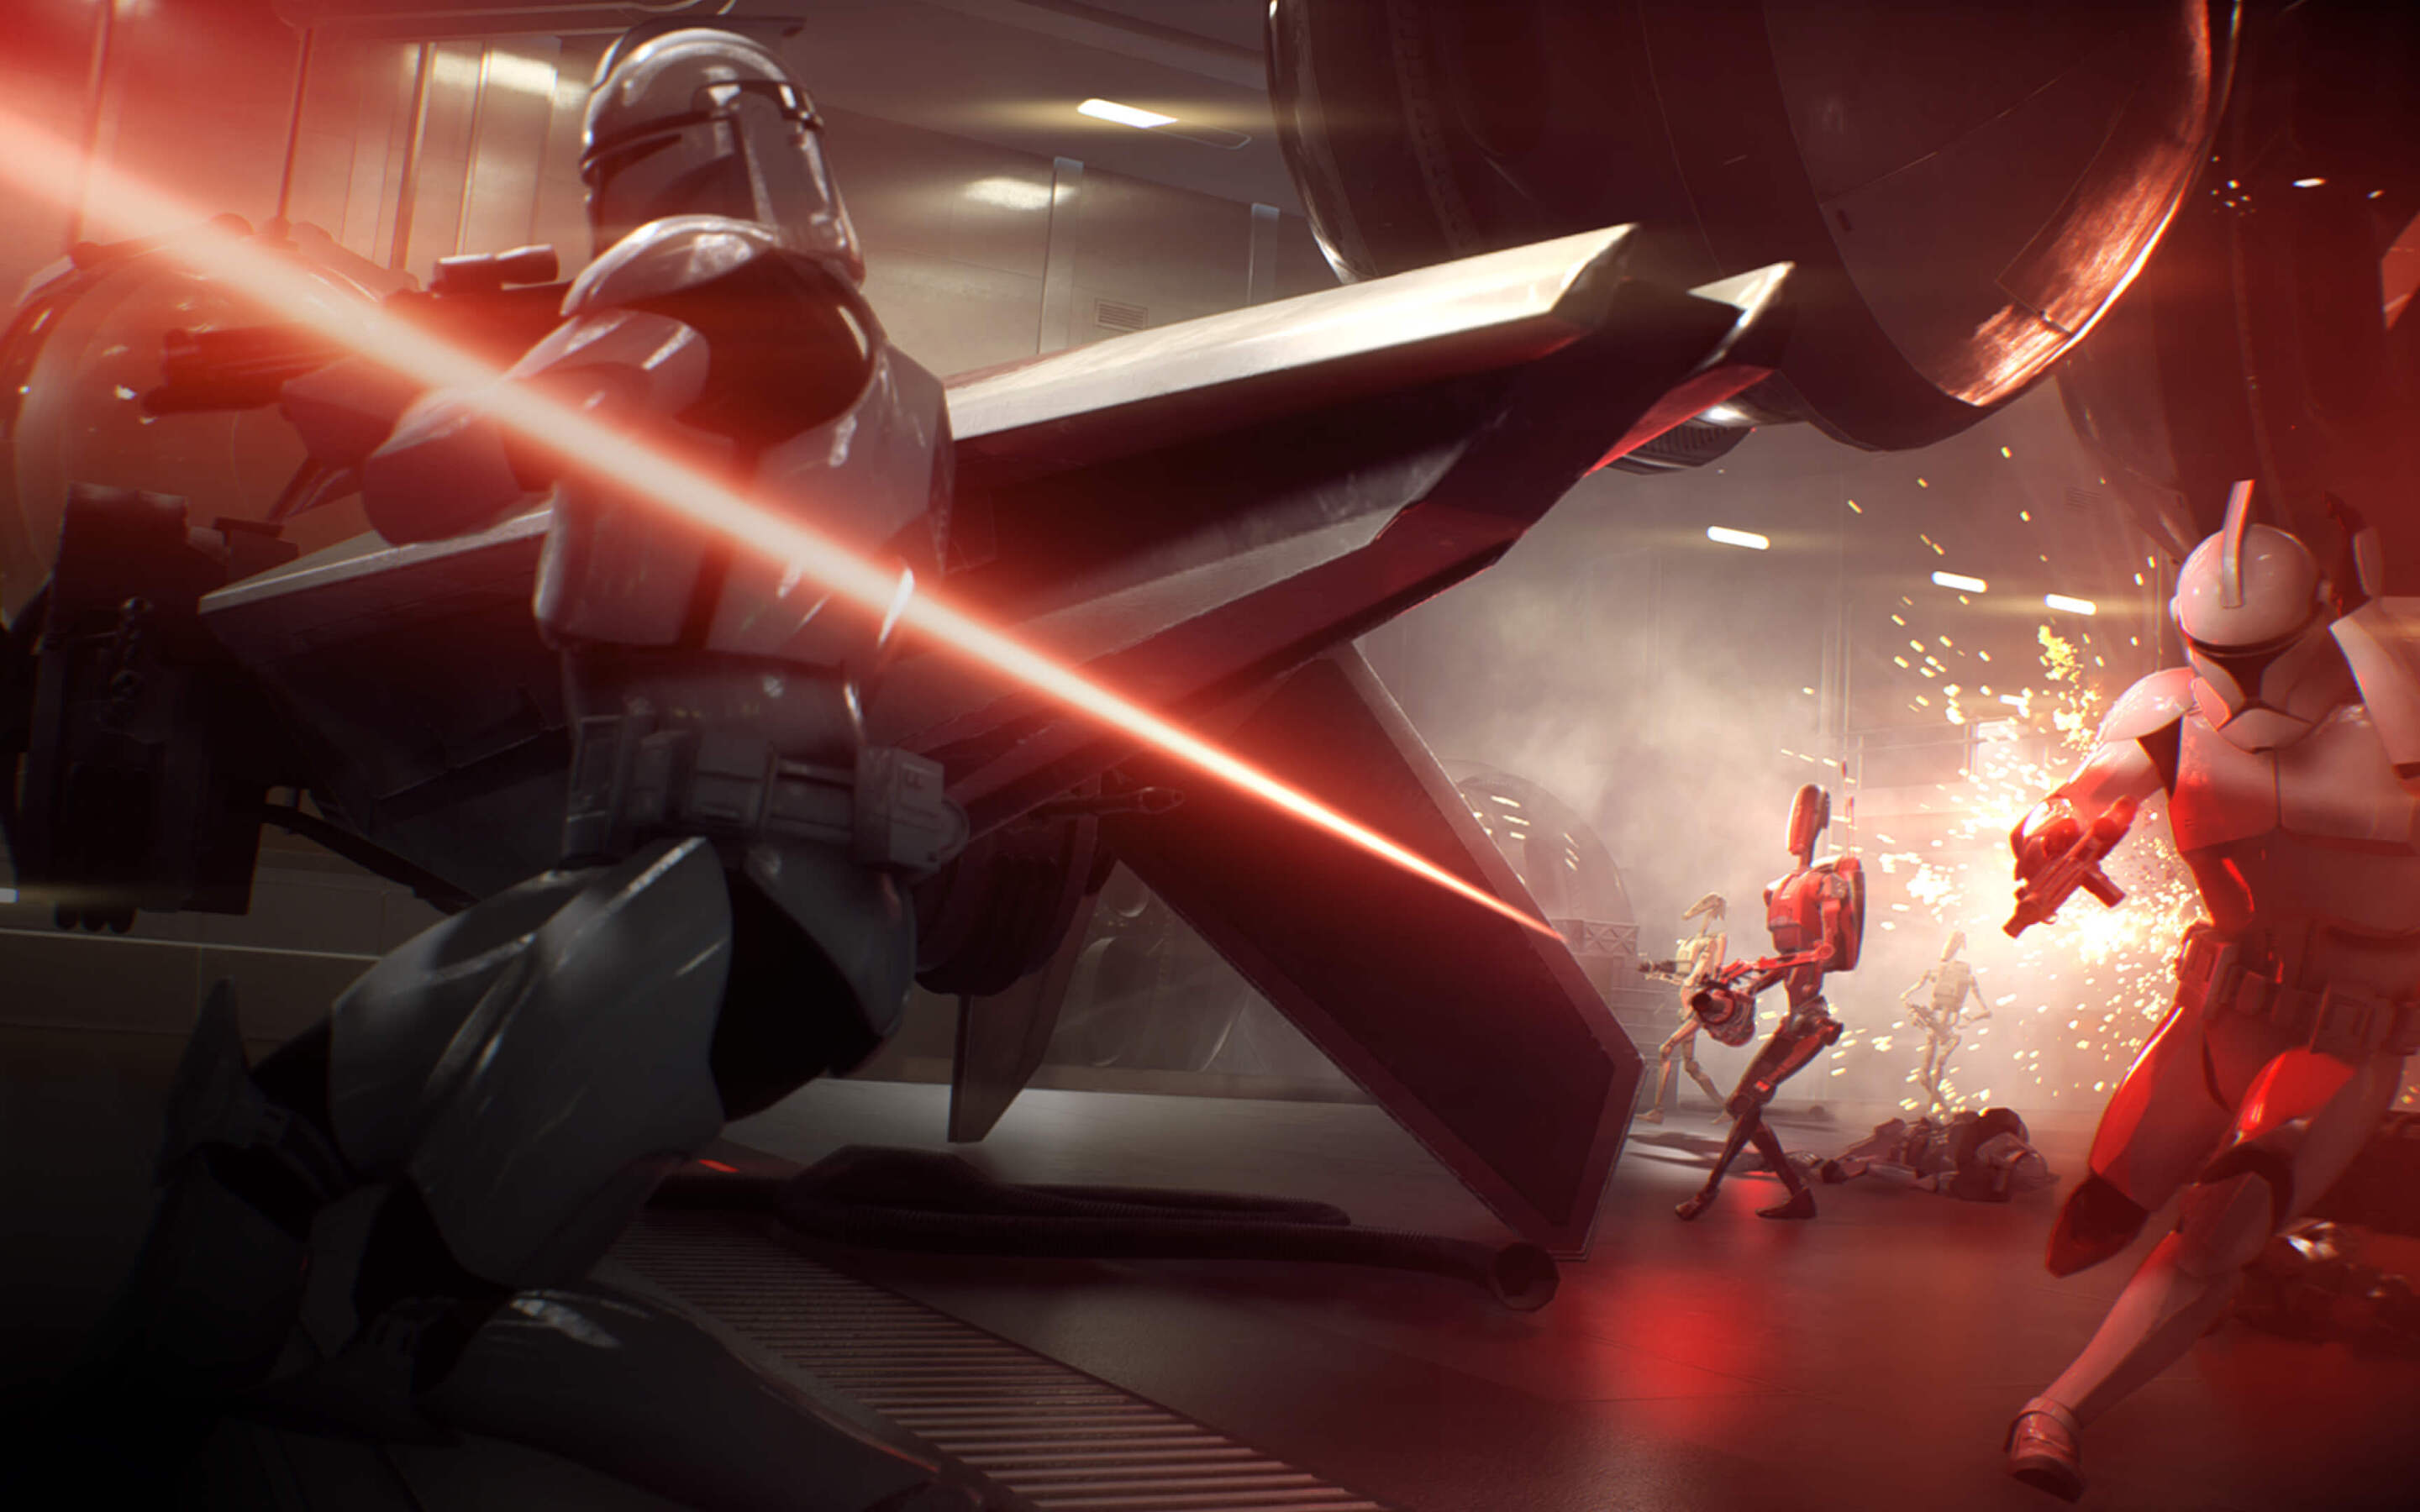 2880x1800 Star Wars Battlefront 2 Gameplay Macbook Pro Retina Hd 4k Wallpapers Images Backgrounds Photos And Pictures